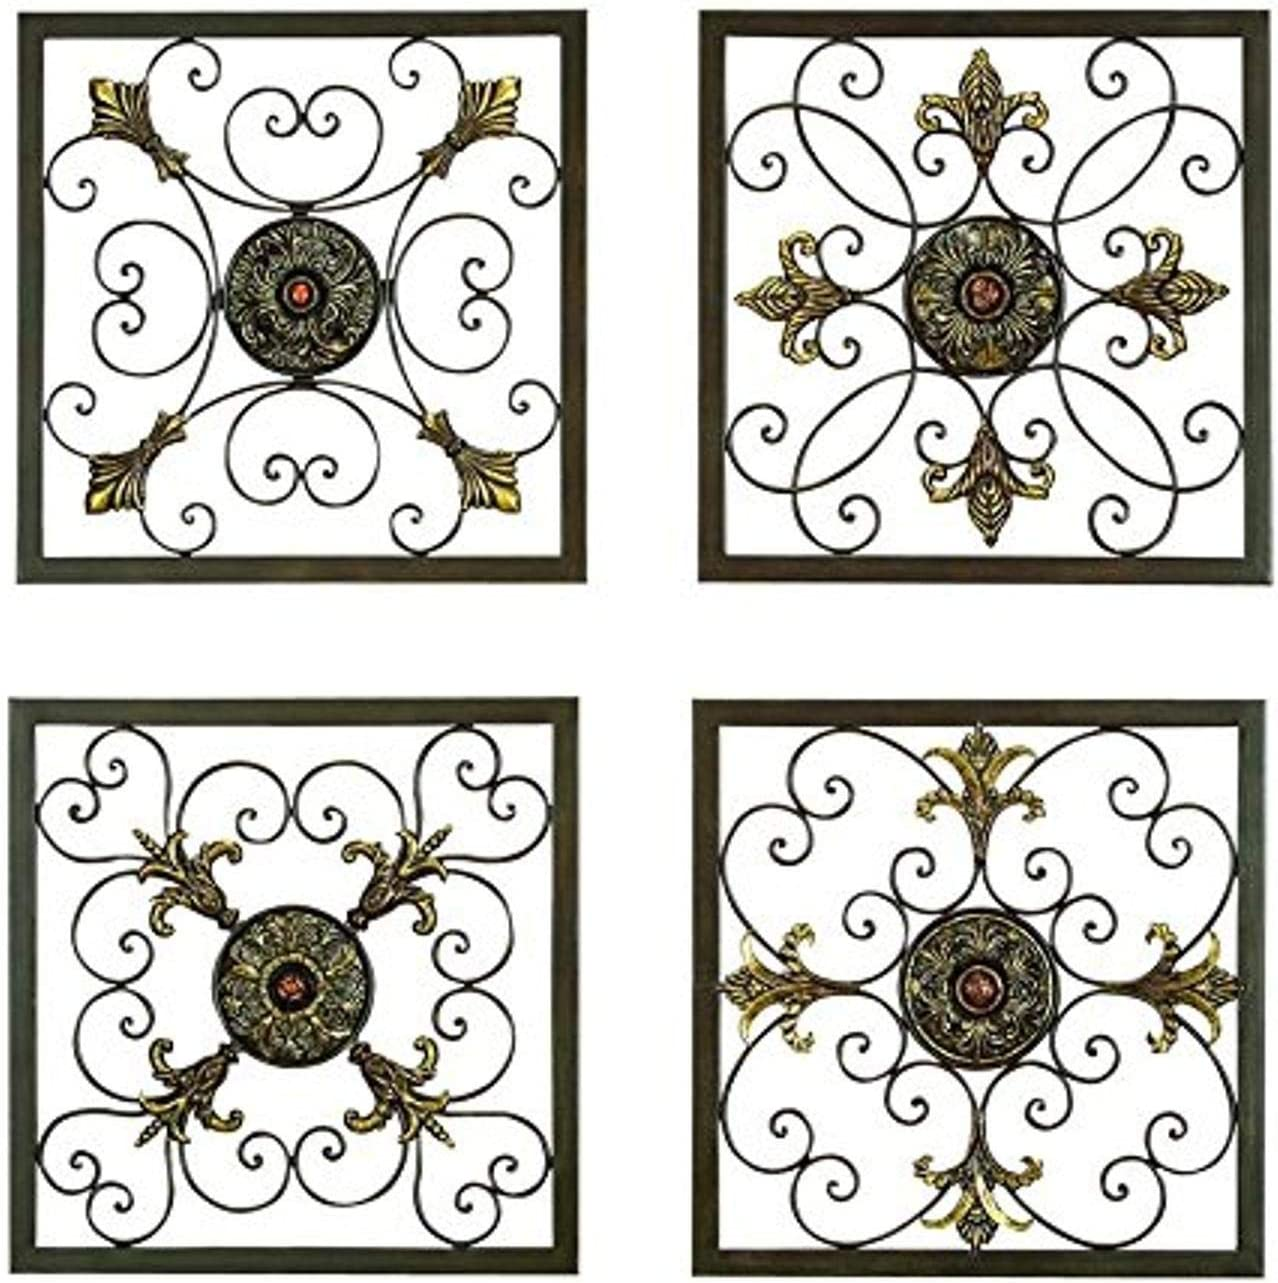 "Aspire Deco 79 Rustic Metal Framed Scrollwork and Medallion Wall Plaques, 16"", 16"", 16"" and 16"" H, Antique Bronze"